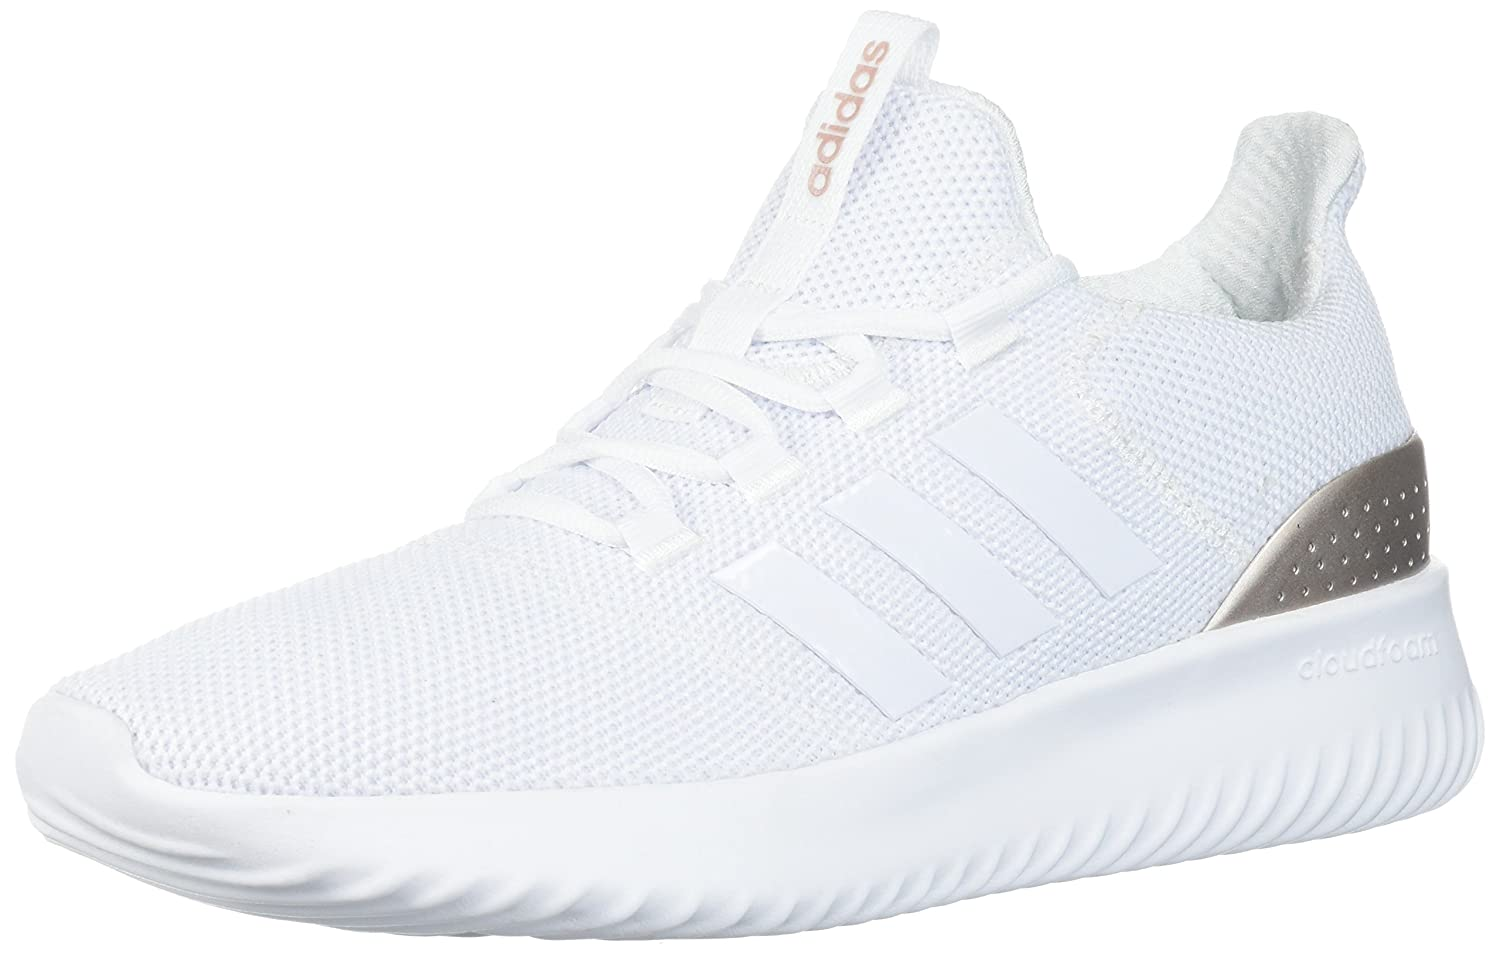 adidas Women's Cloudfoam Ultimate Running US|White/White/Grey Shoe B0716XGBW3 6 B(M) US|White/White/Grey Running Three 0ab8a4